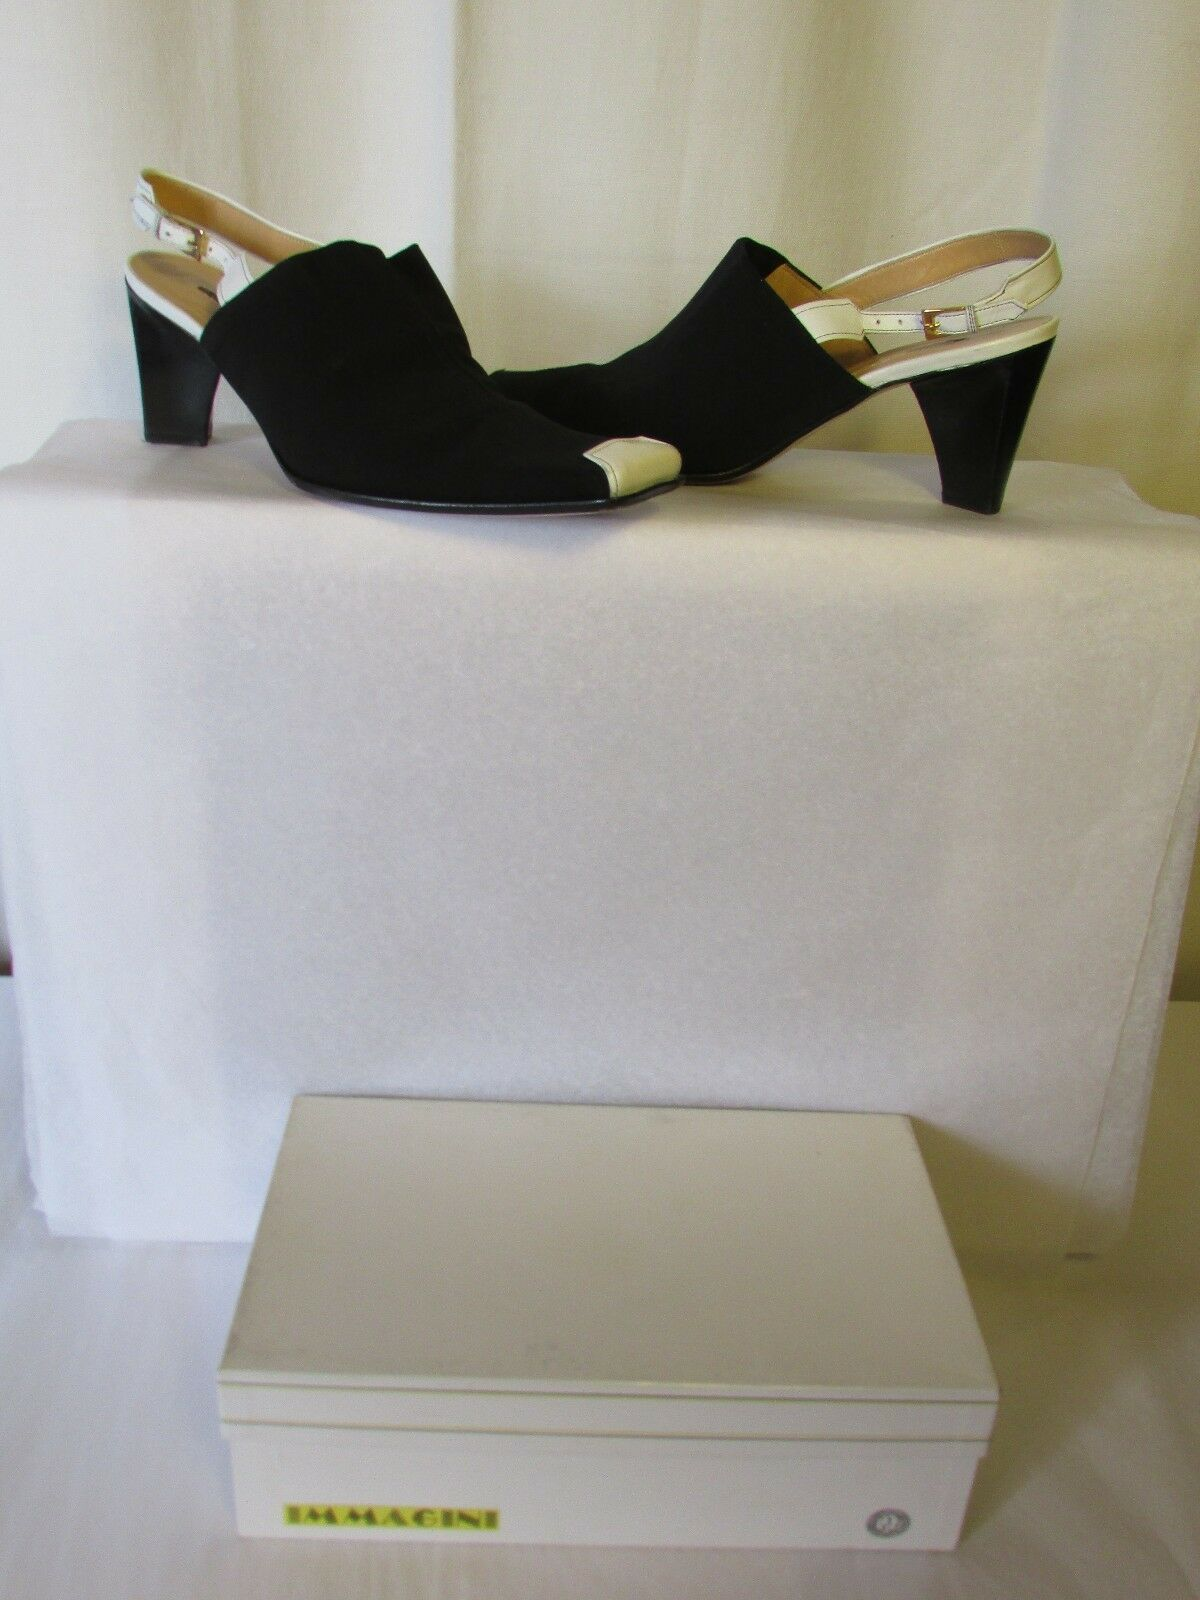 Court shoes Immagini Material Elastic Black & White Leather 41